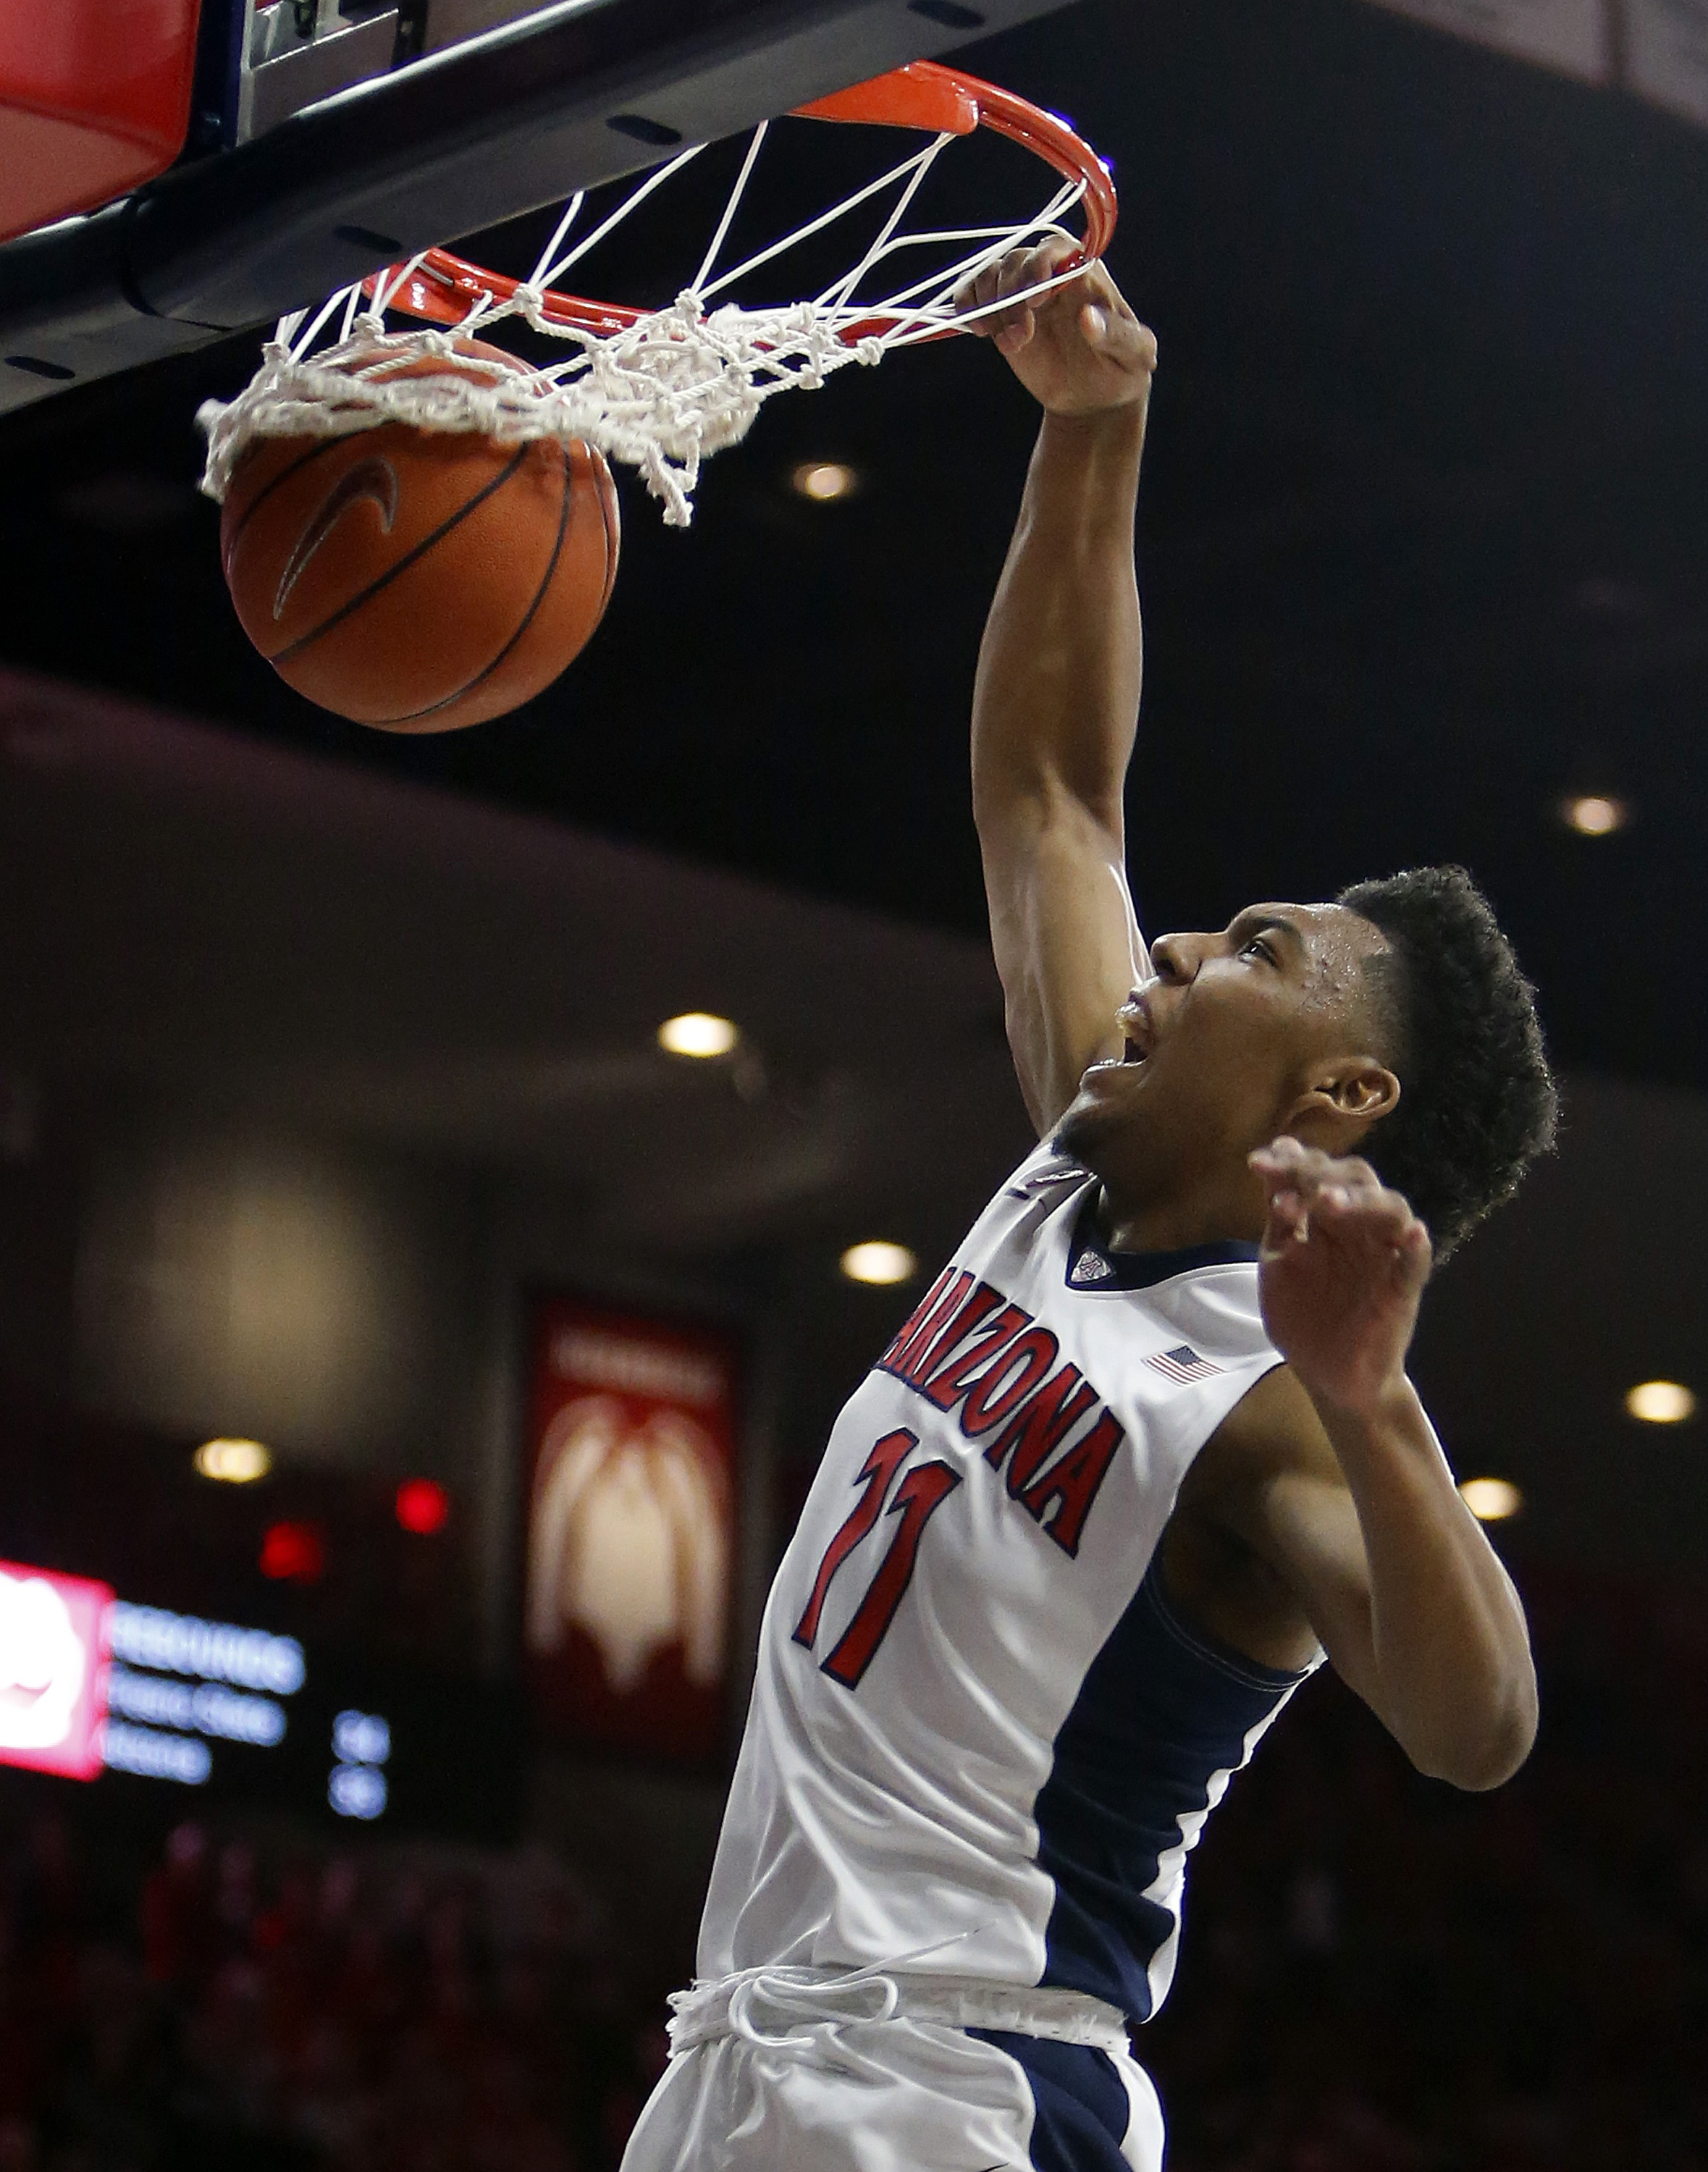 Arizona guard Allonzo Trier dunks the ball during the second half of an NCAA college basketball game against Fresno State, Wednesday, Dec. 9, 2015, in Tucson, Ariz. (AP Photo/Rick Scuteri)